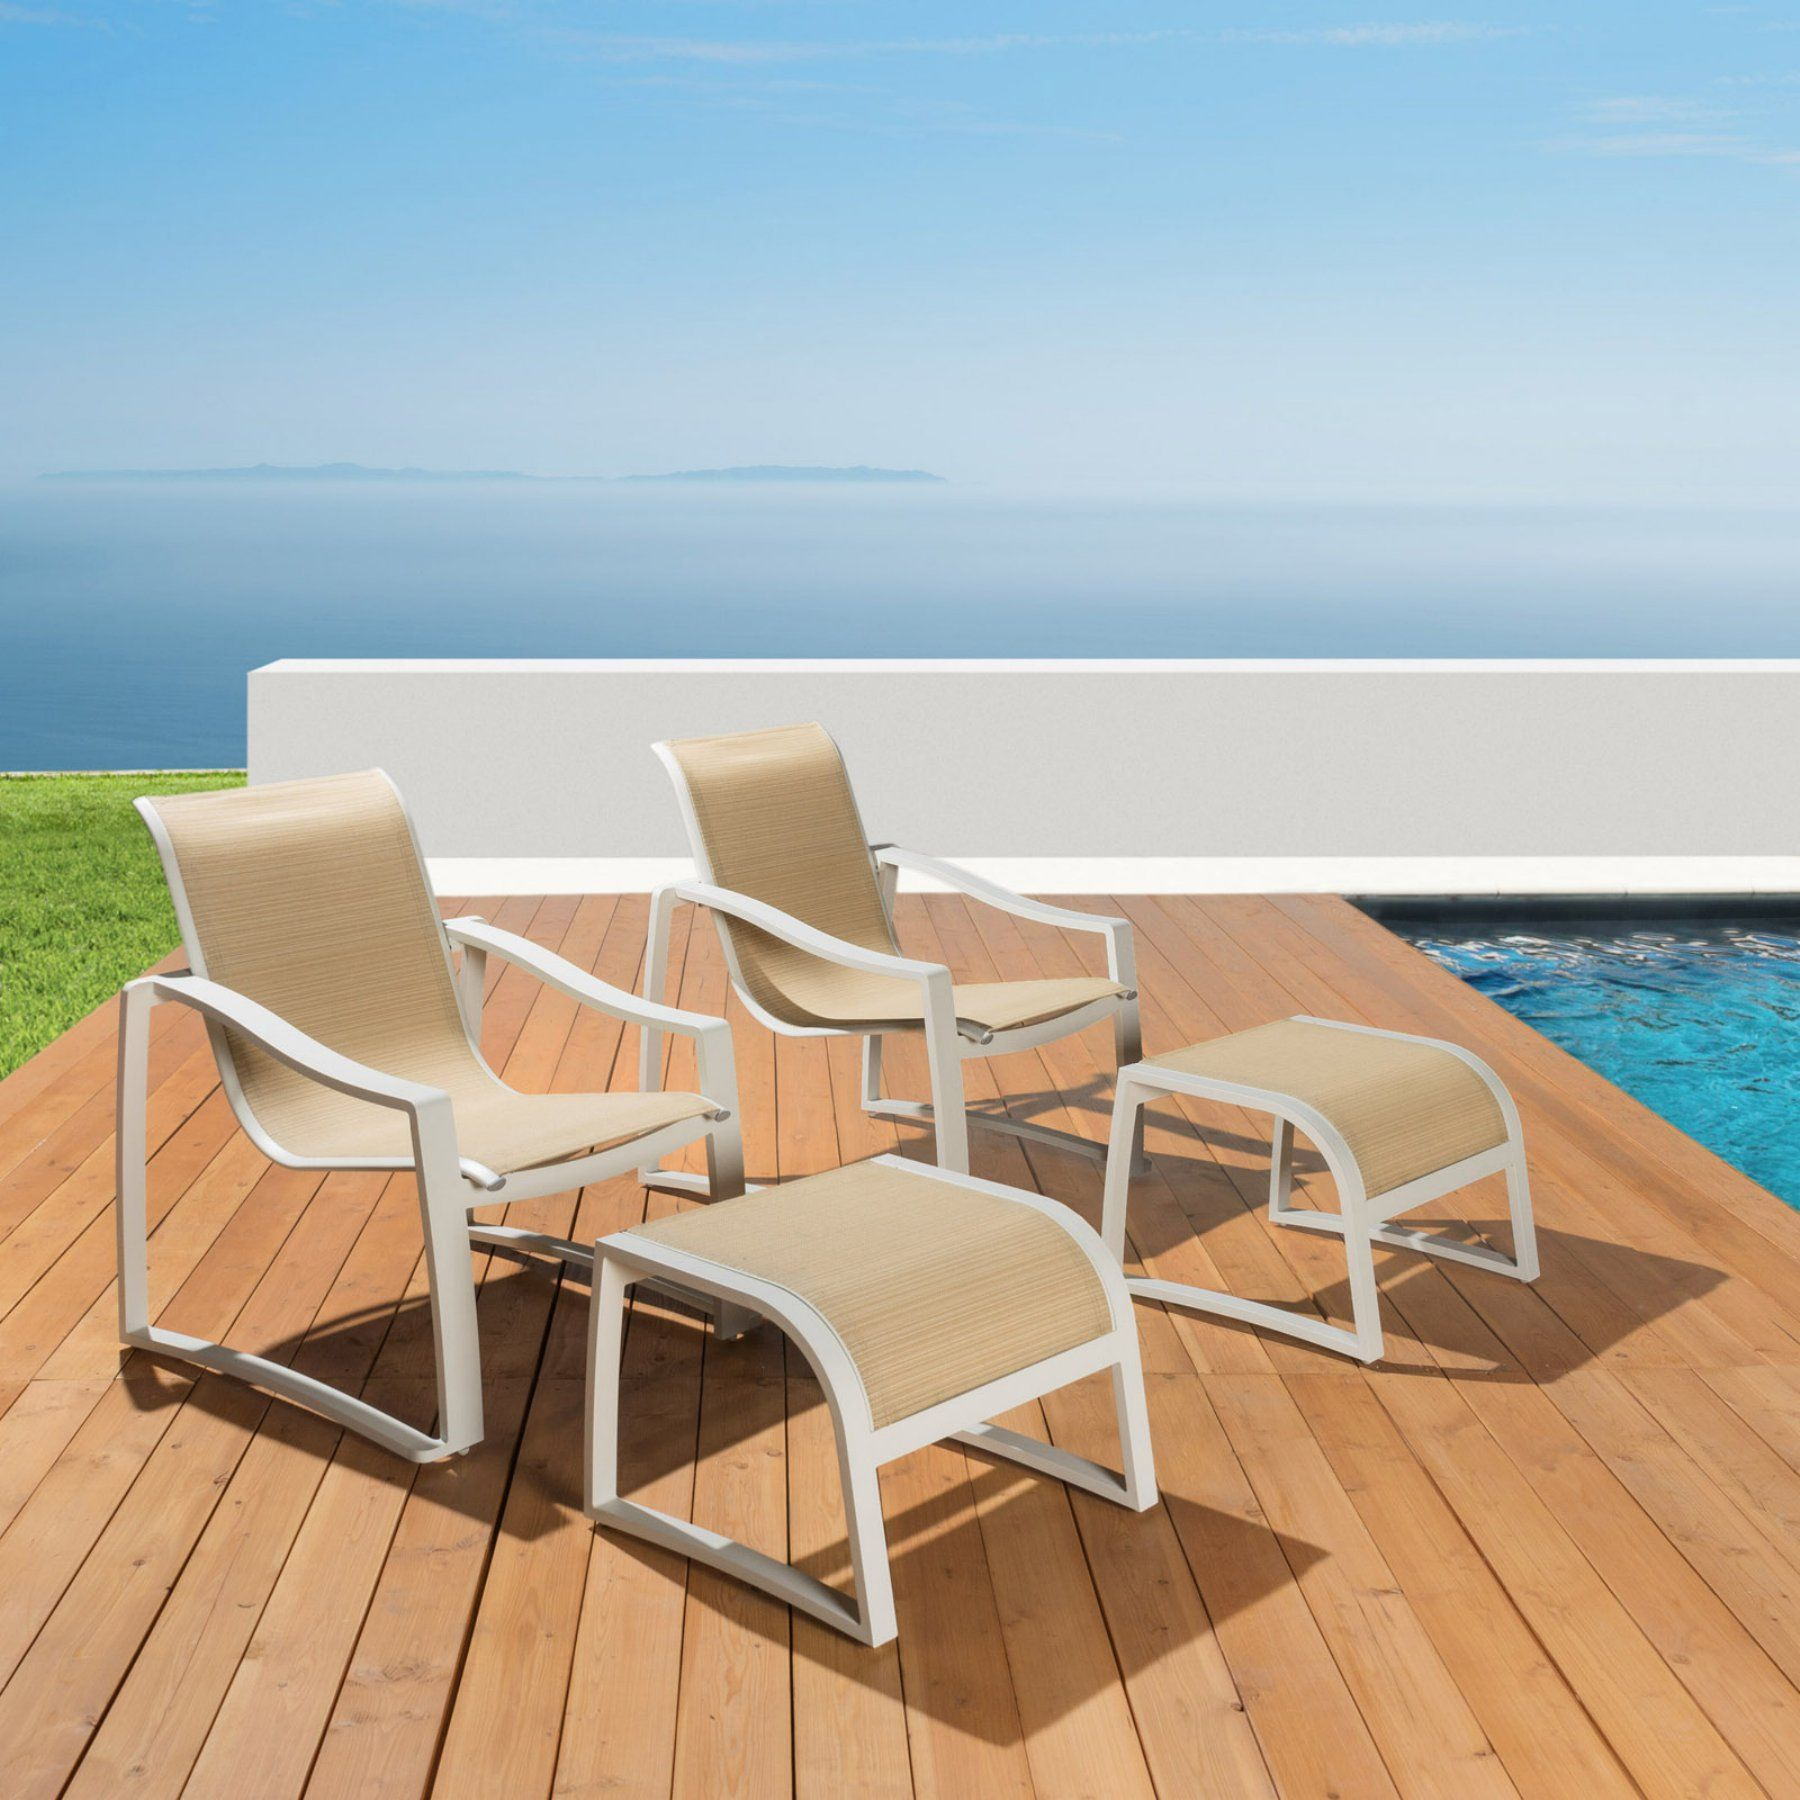 Top 15 of Unique Indoor Chaise Lounge Chairs